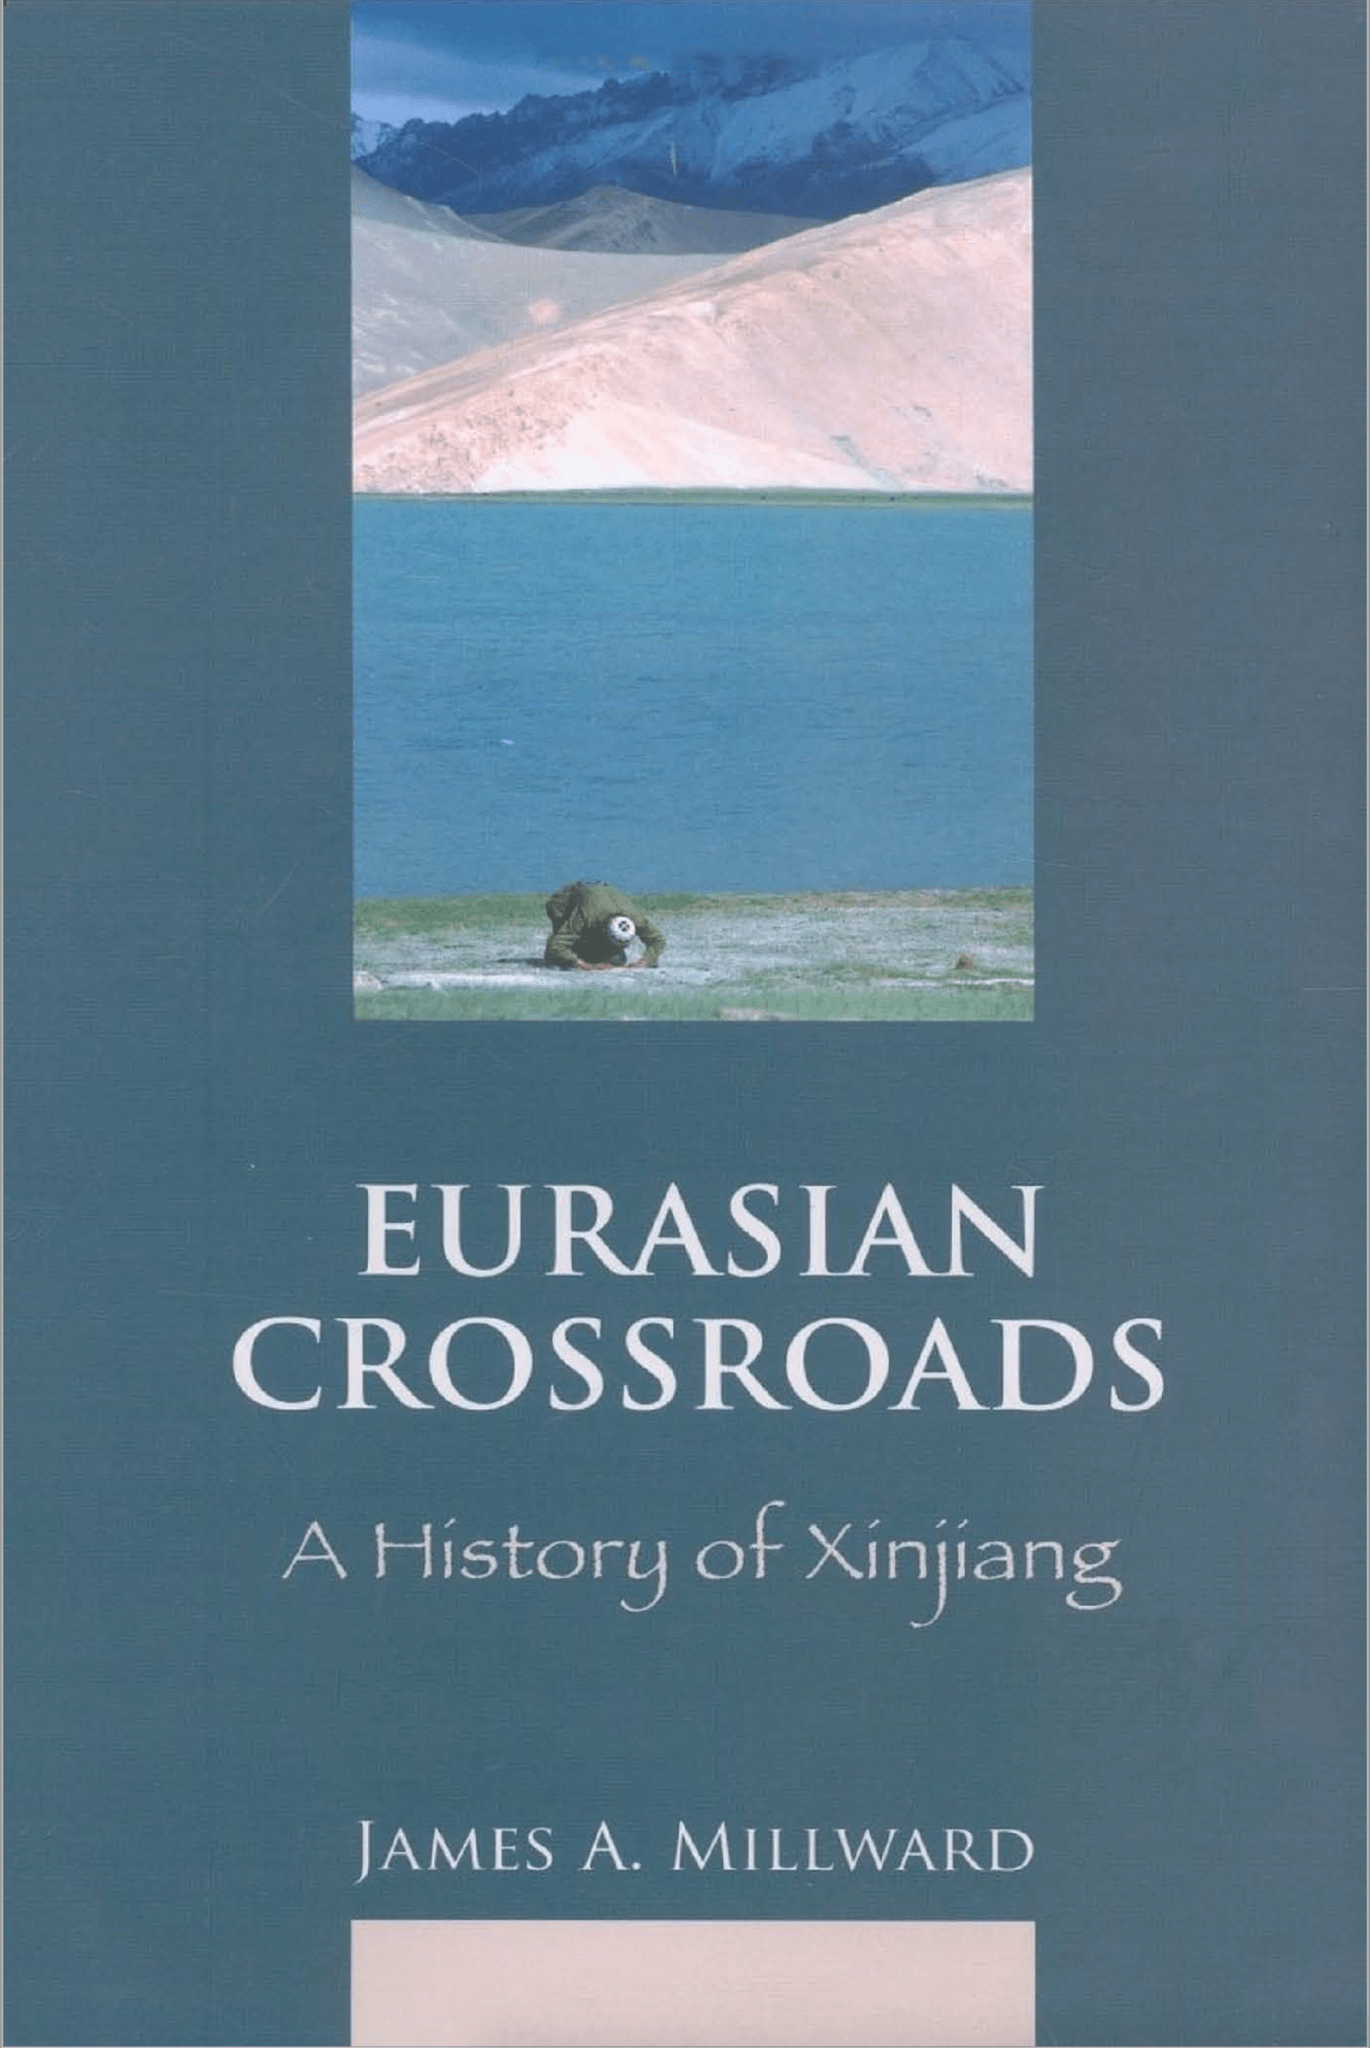 Screenshot 2020 02 03 at 10.23.49 - Eurasian Crossroads: A History of Xinjiang